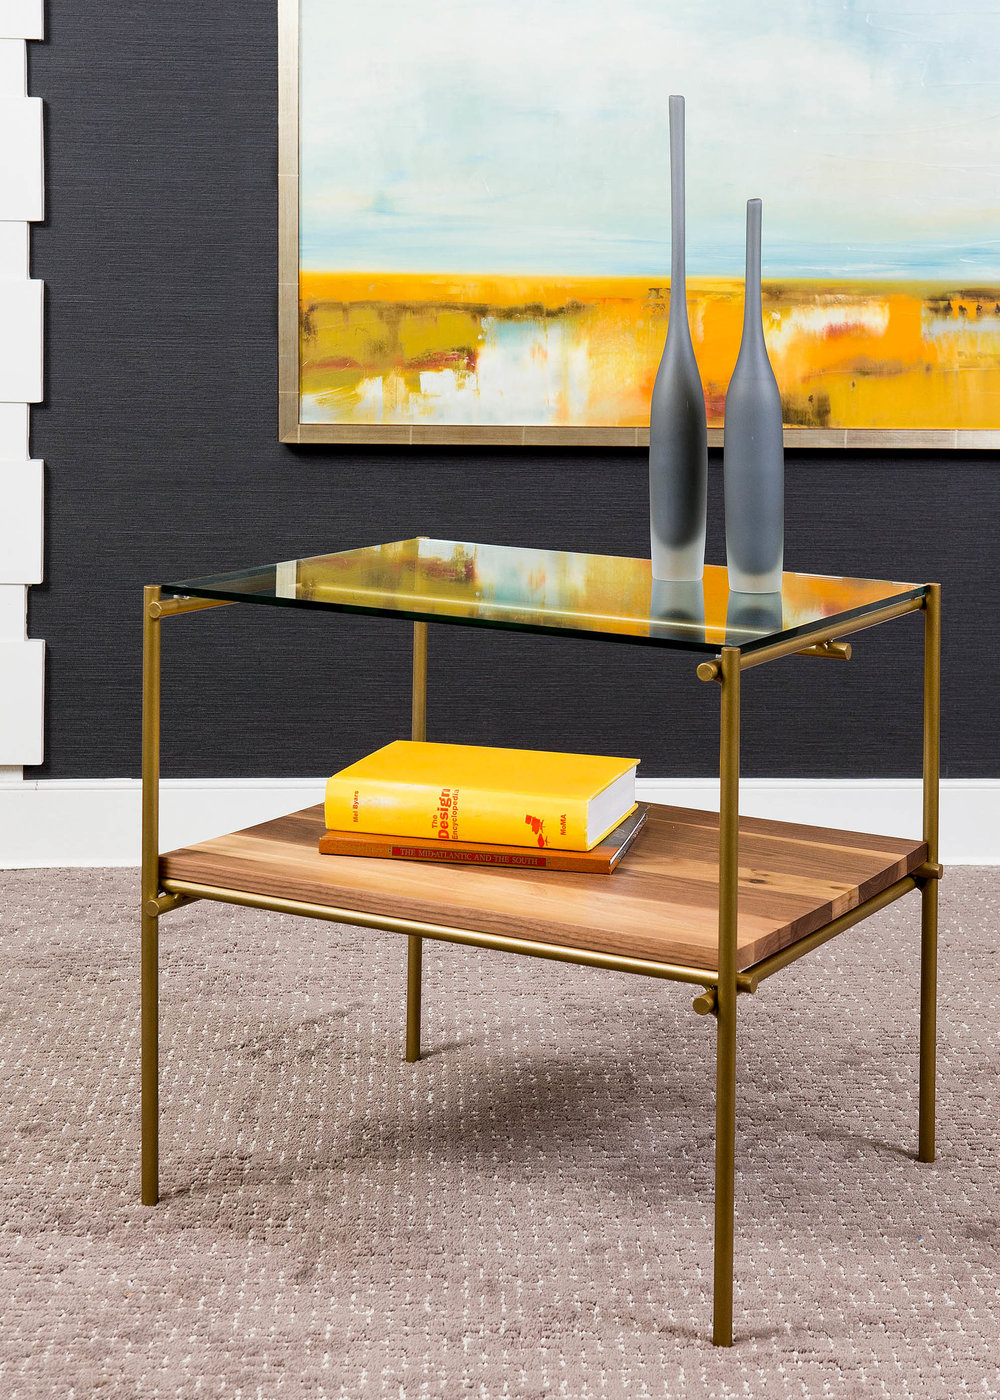 """It is not enough for a side table to be only functional. The silhouette and materials should add a spark of interest to your home. Our Katie table combines burnished gold, glass, and natural walnut to embody a modern, organic elegance."" - Paul Miller, Lookbook 2019"